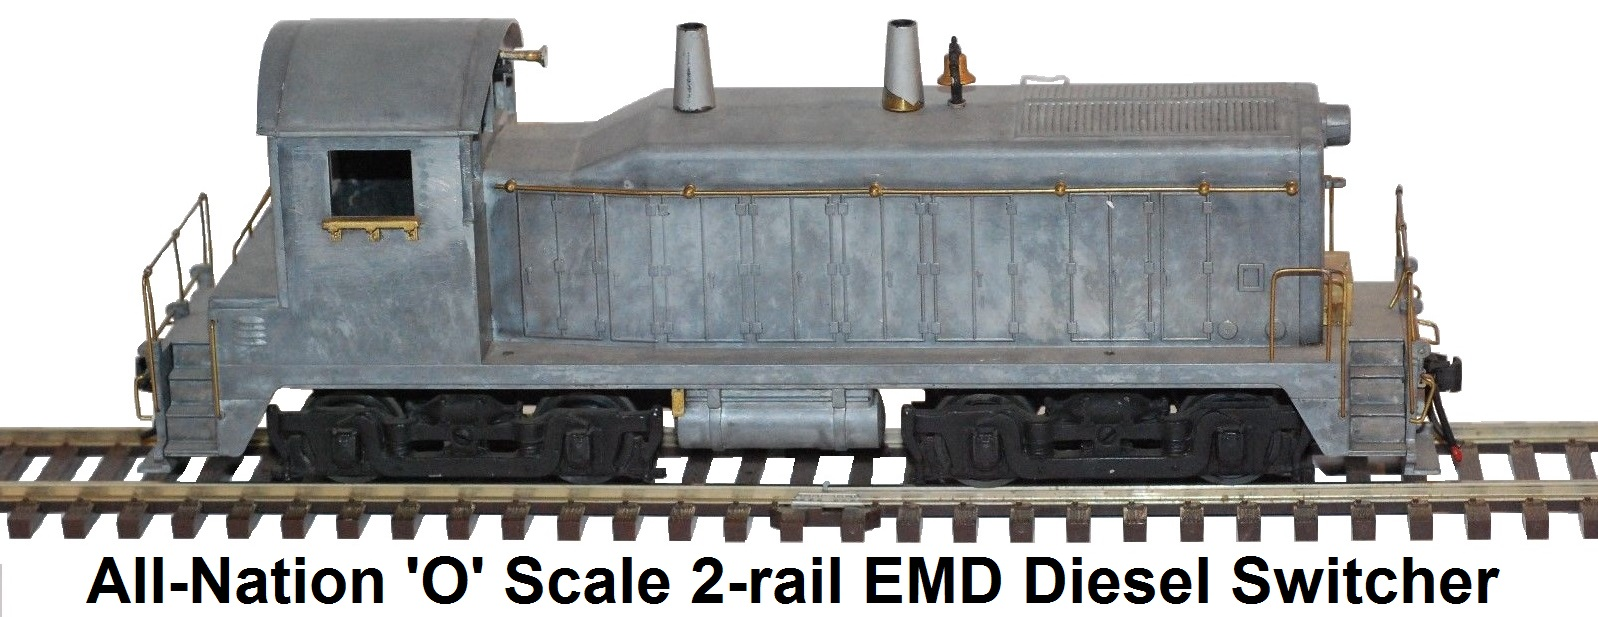 All-Nation 'O' scale EMD 1,000 HP Diesel Yard Switcher for 2-rail